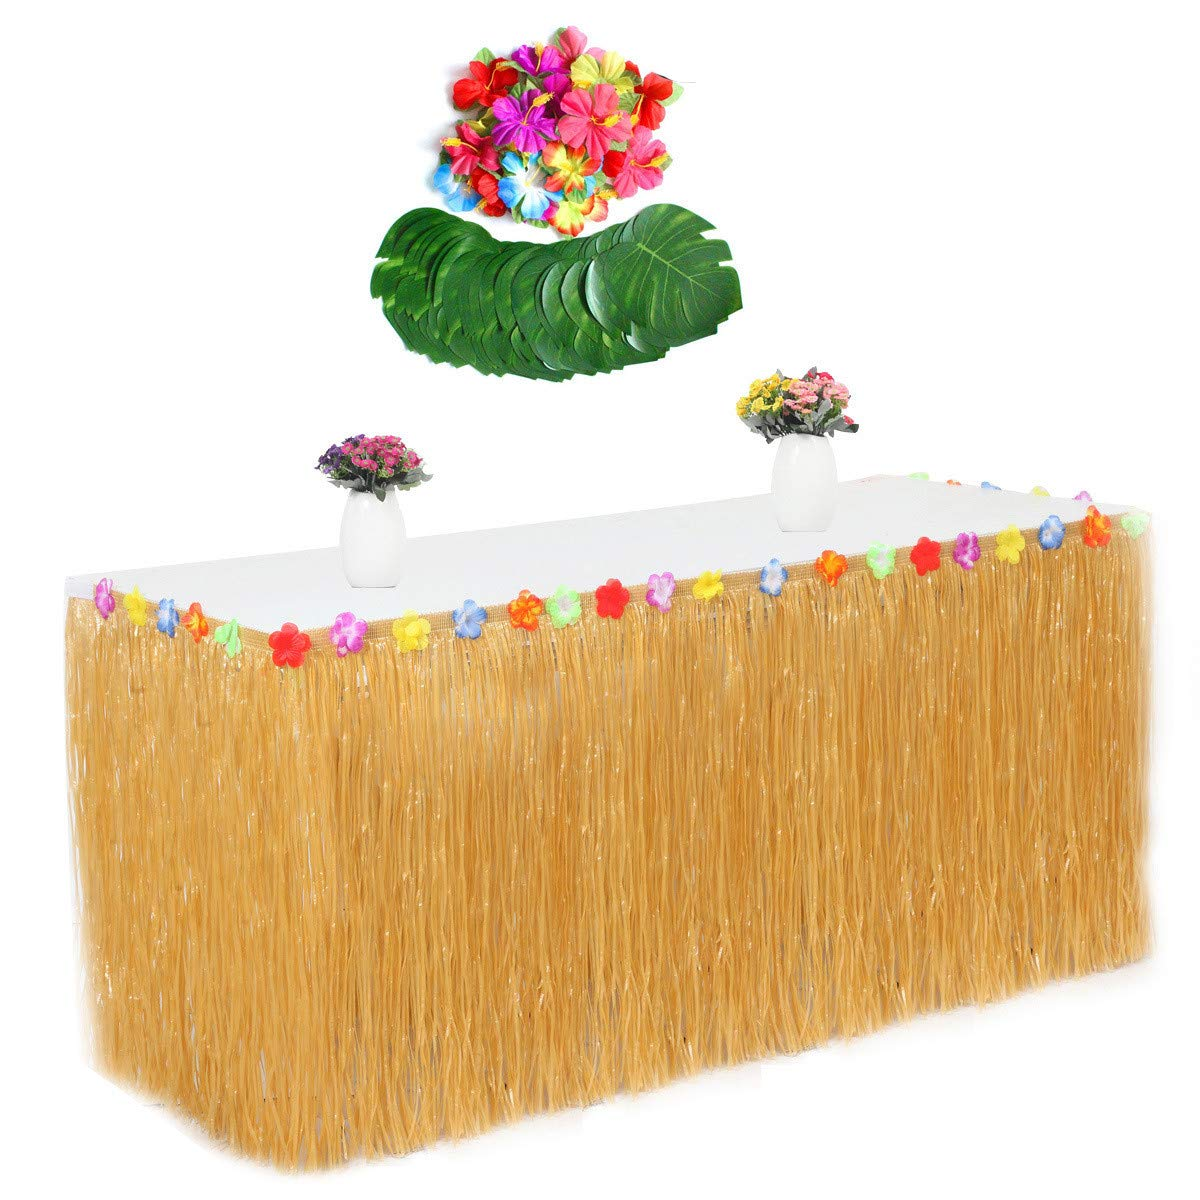 LKXHarleya Hawaiian Luau Grass Table Skirt Hula String, Faux 24pcs Hibiscus Flowers, 54pcs Artificial Turtle Leaf Tropical Leaves for Birthday Party Decoration,Khaki